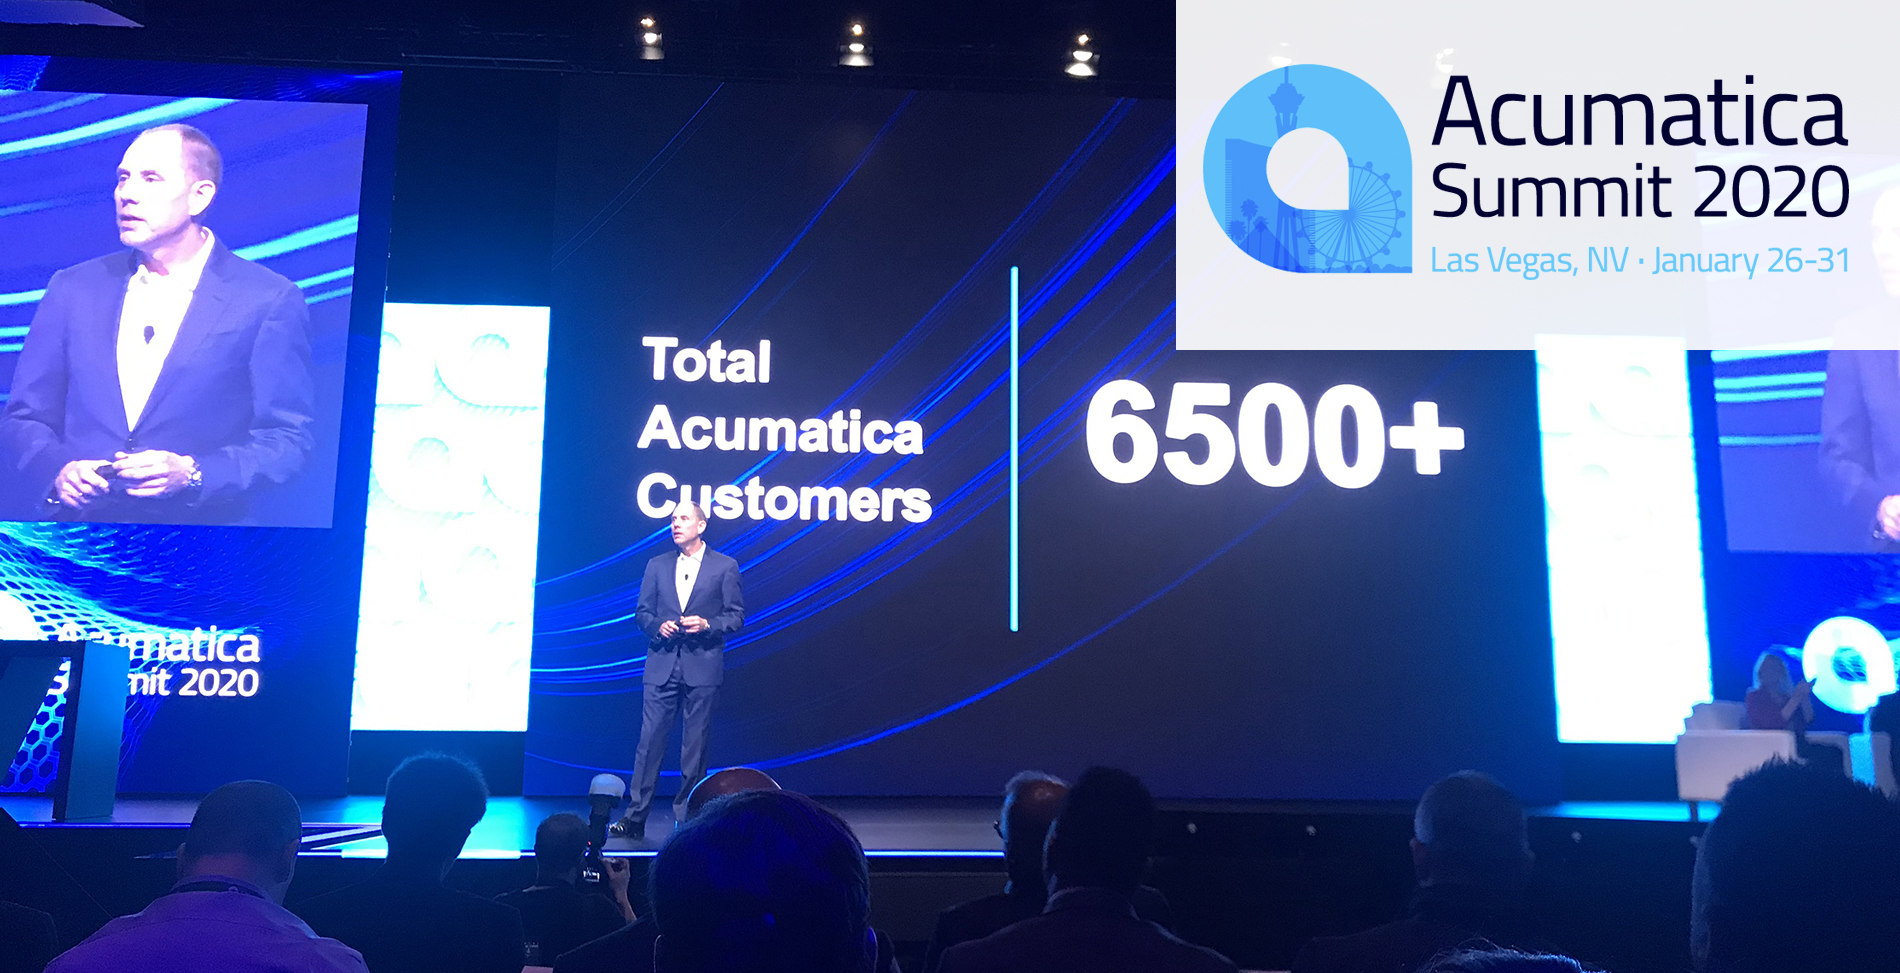 Day 1 Acumatica Summit 2020 Keynotes